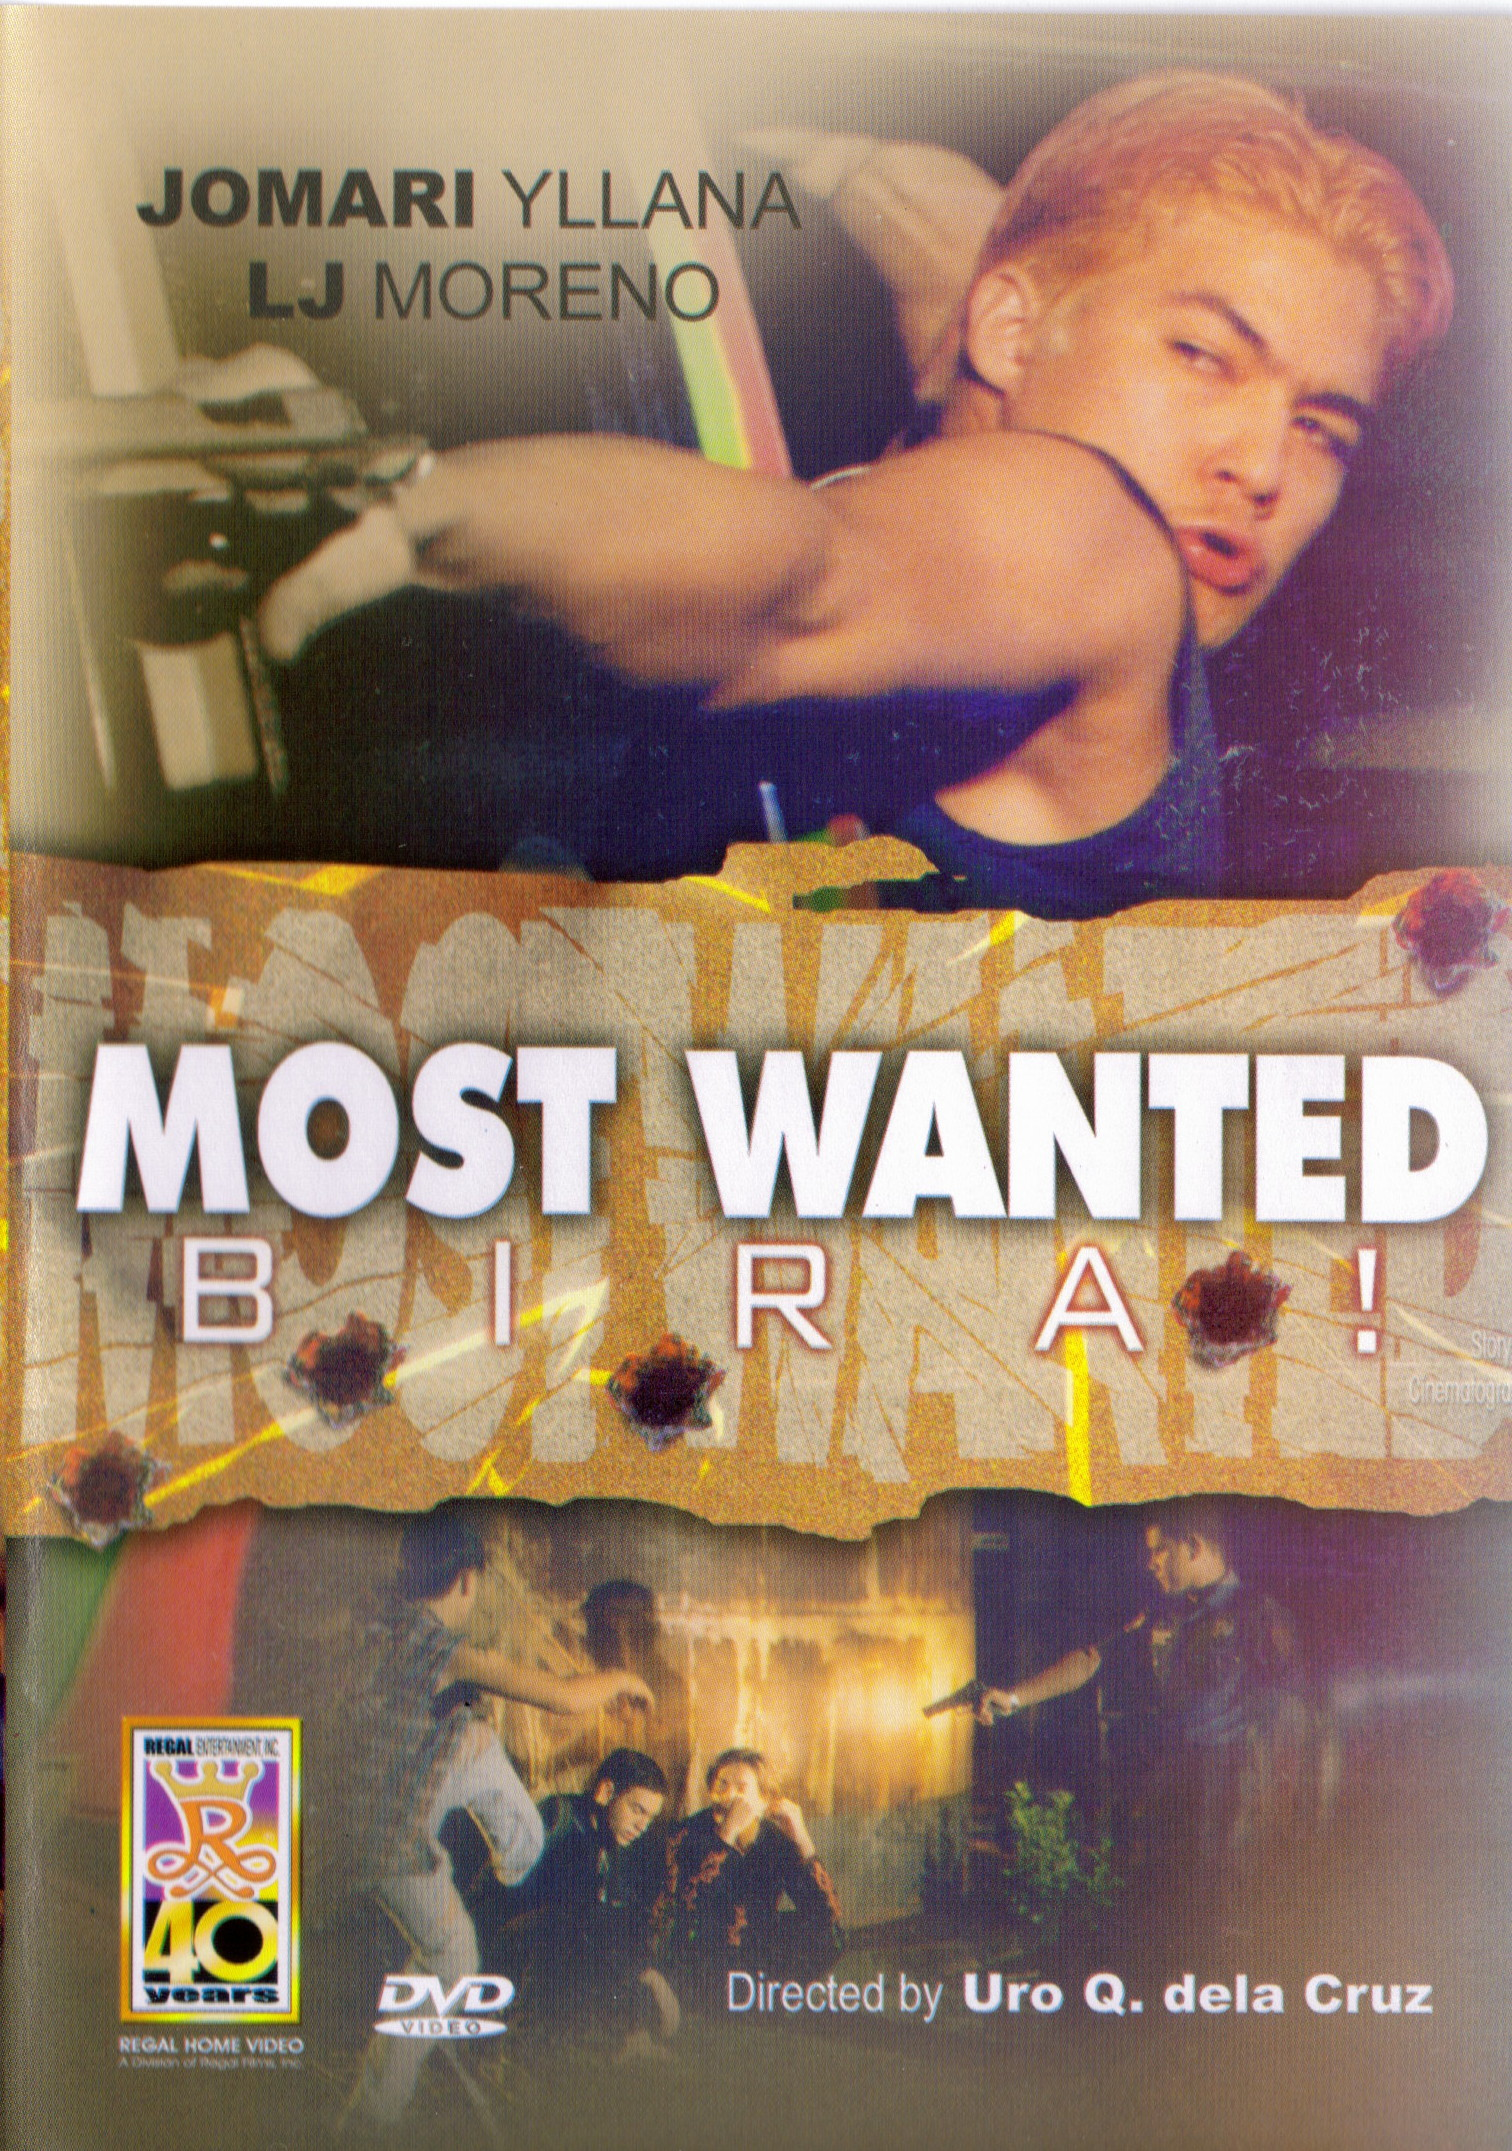 Most Wanted Bira!